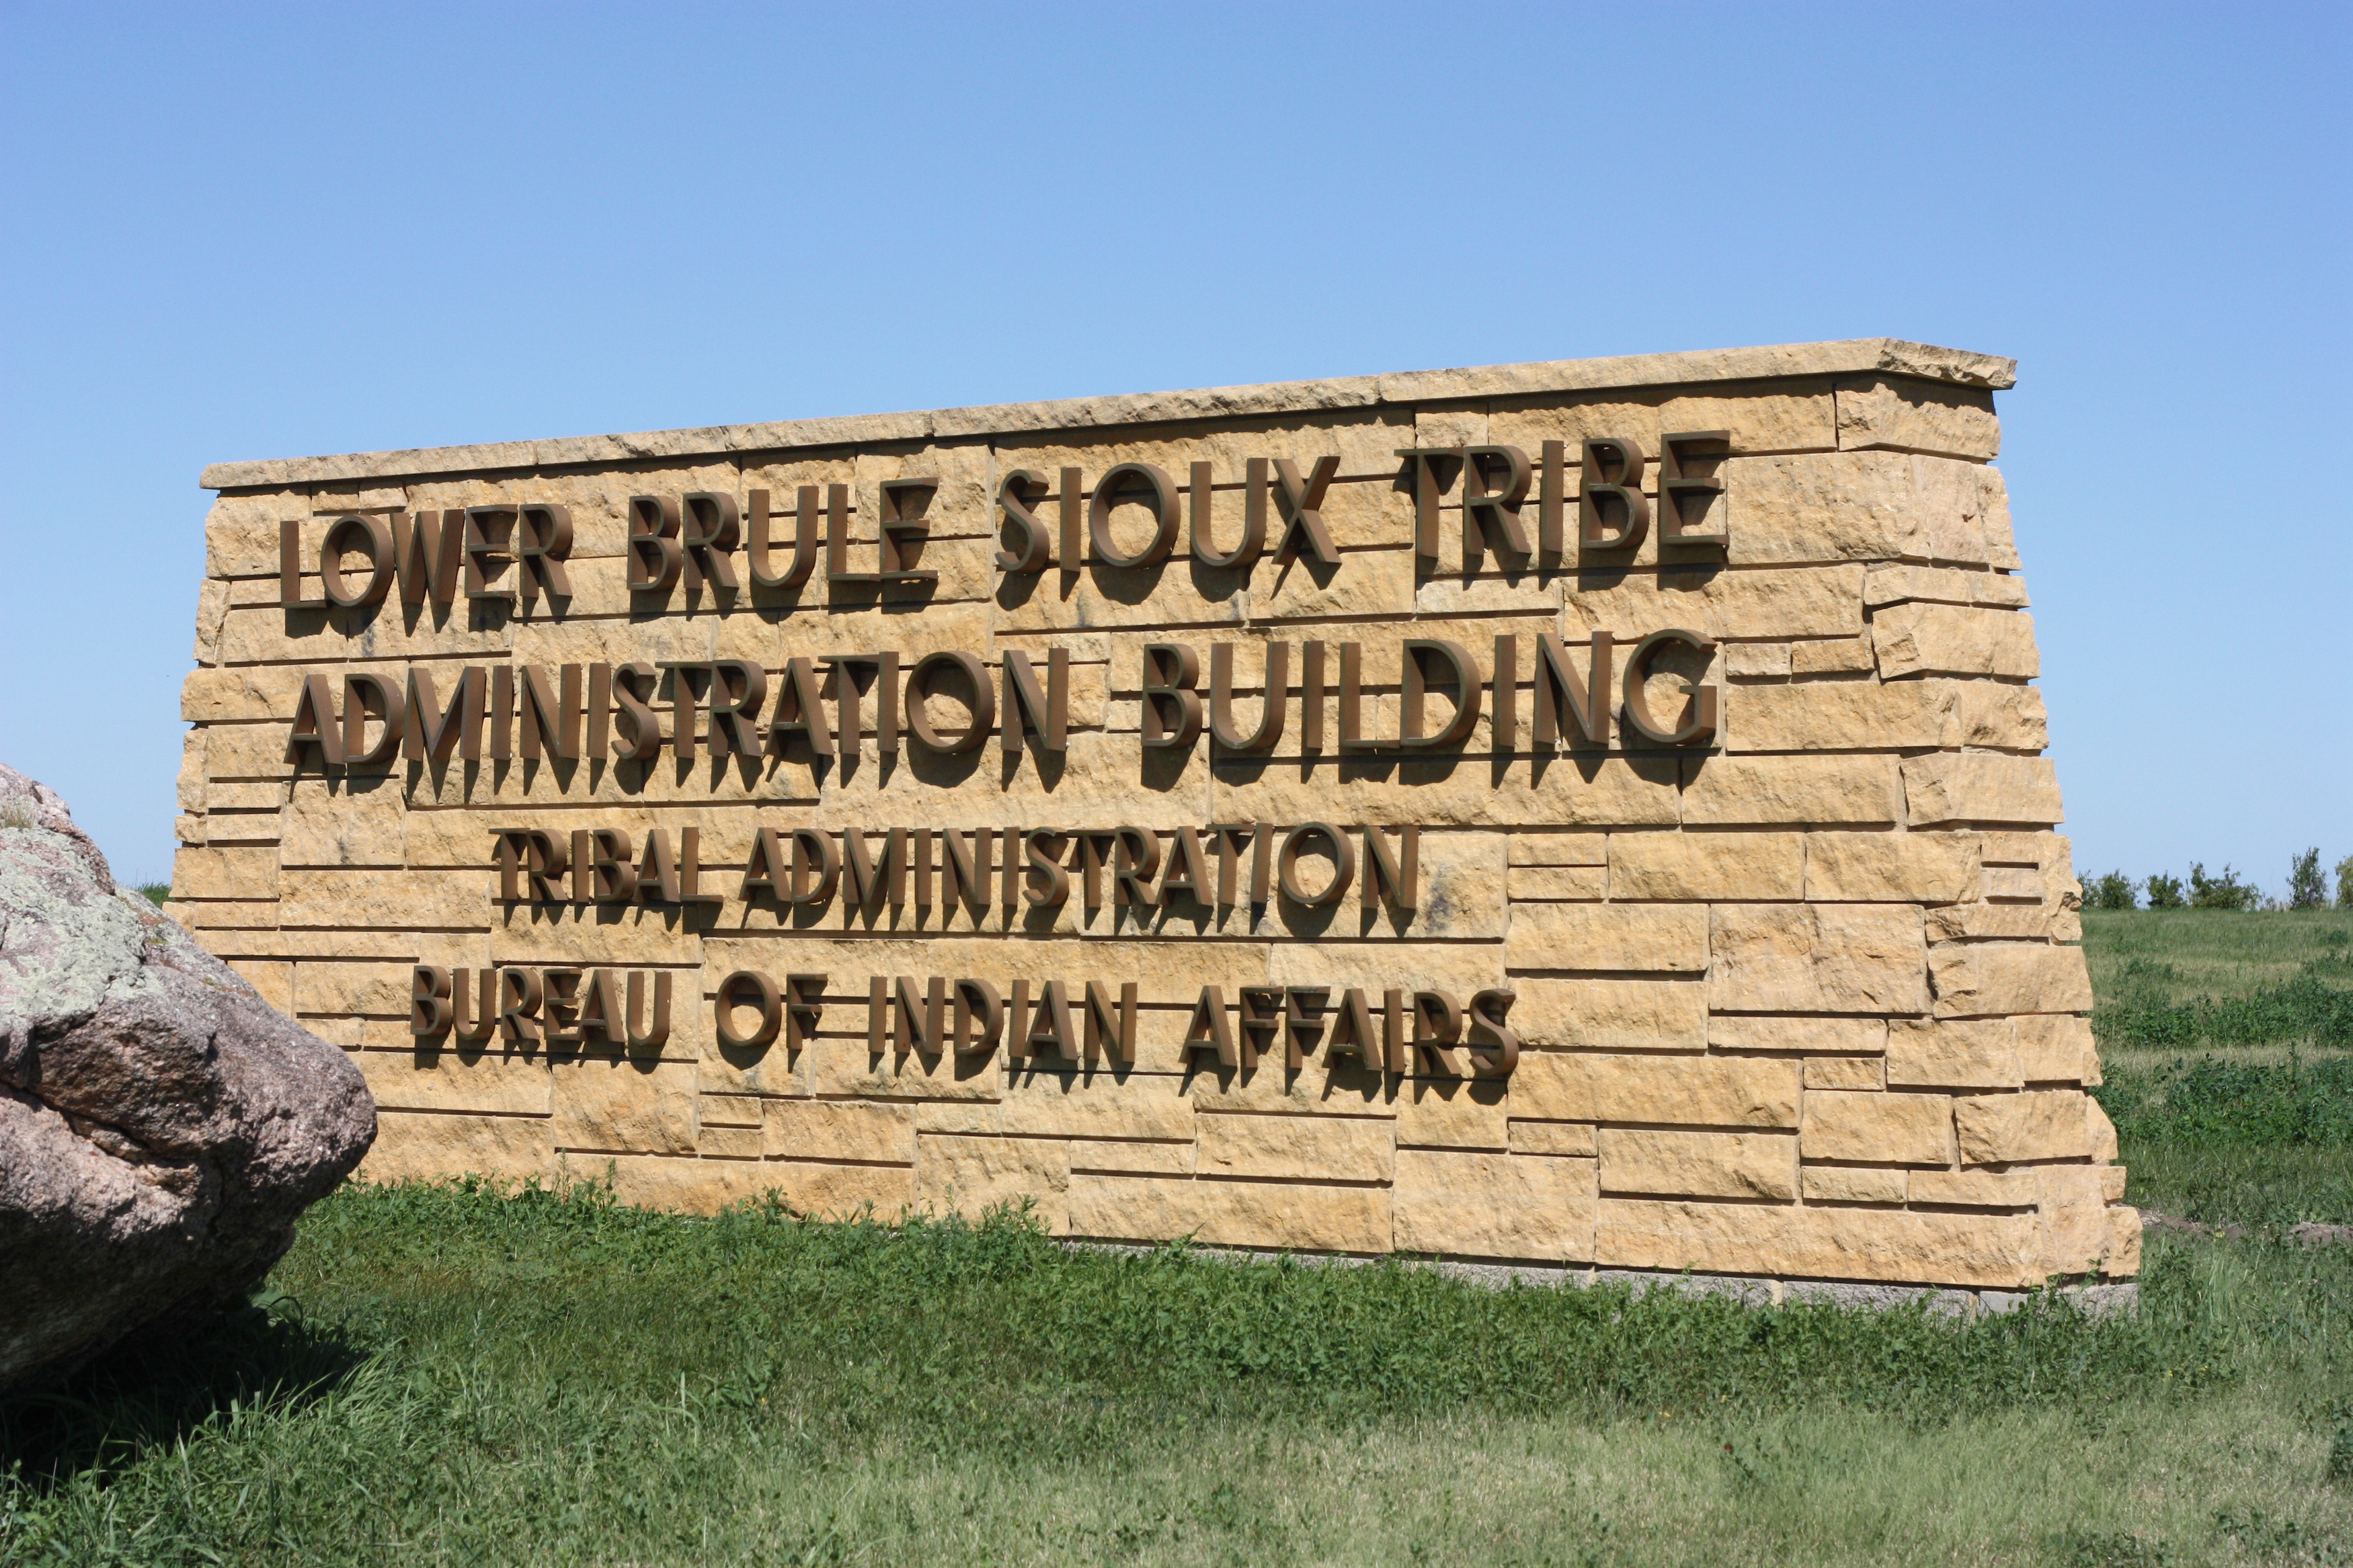 Lower Brule Sioux Tribe accused of 'misuse' of water project funds